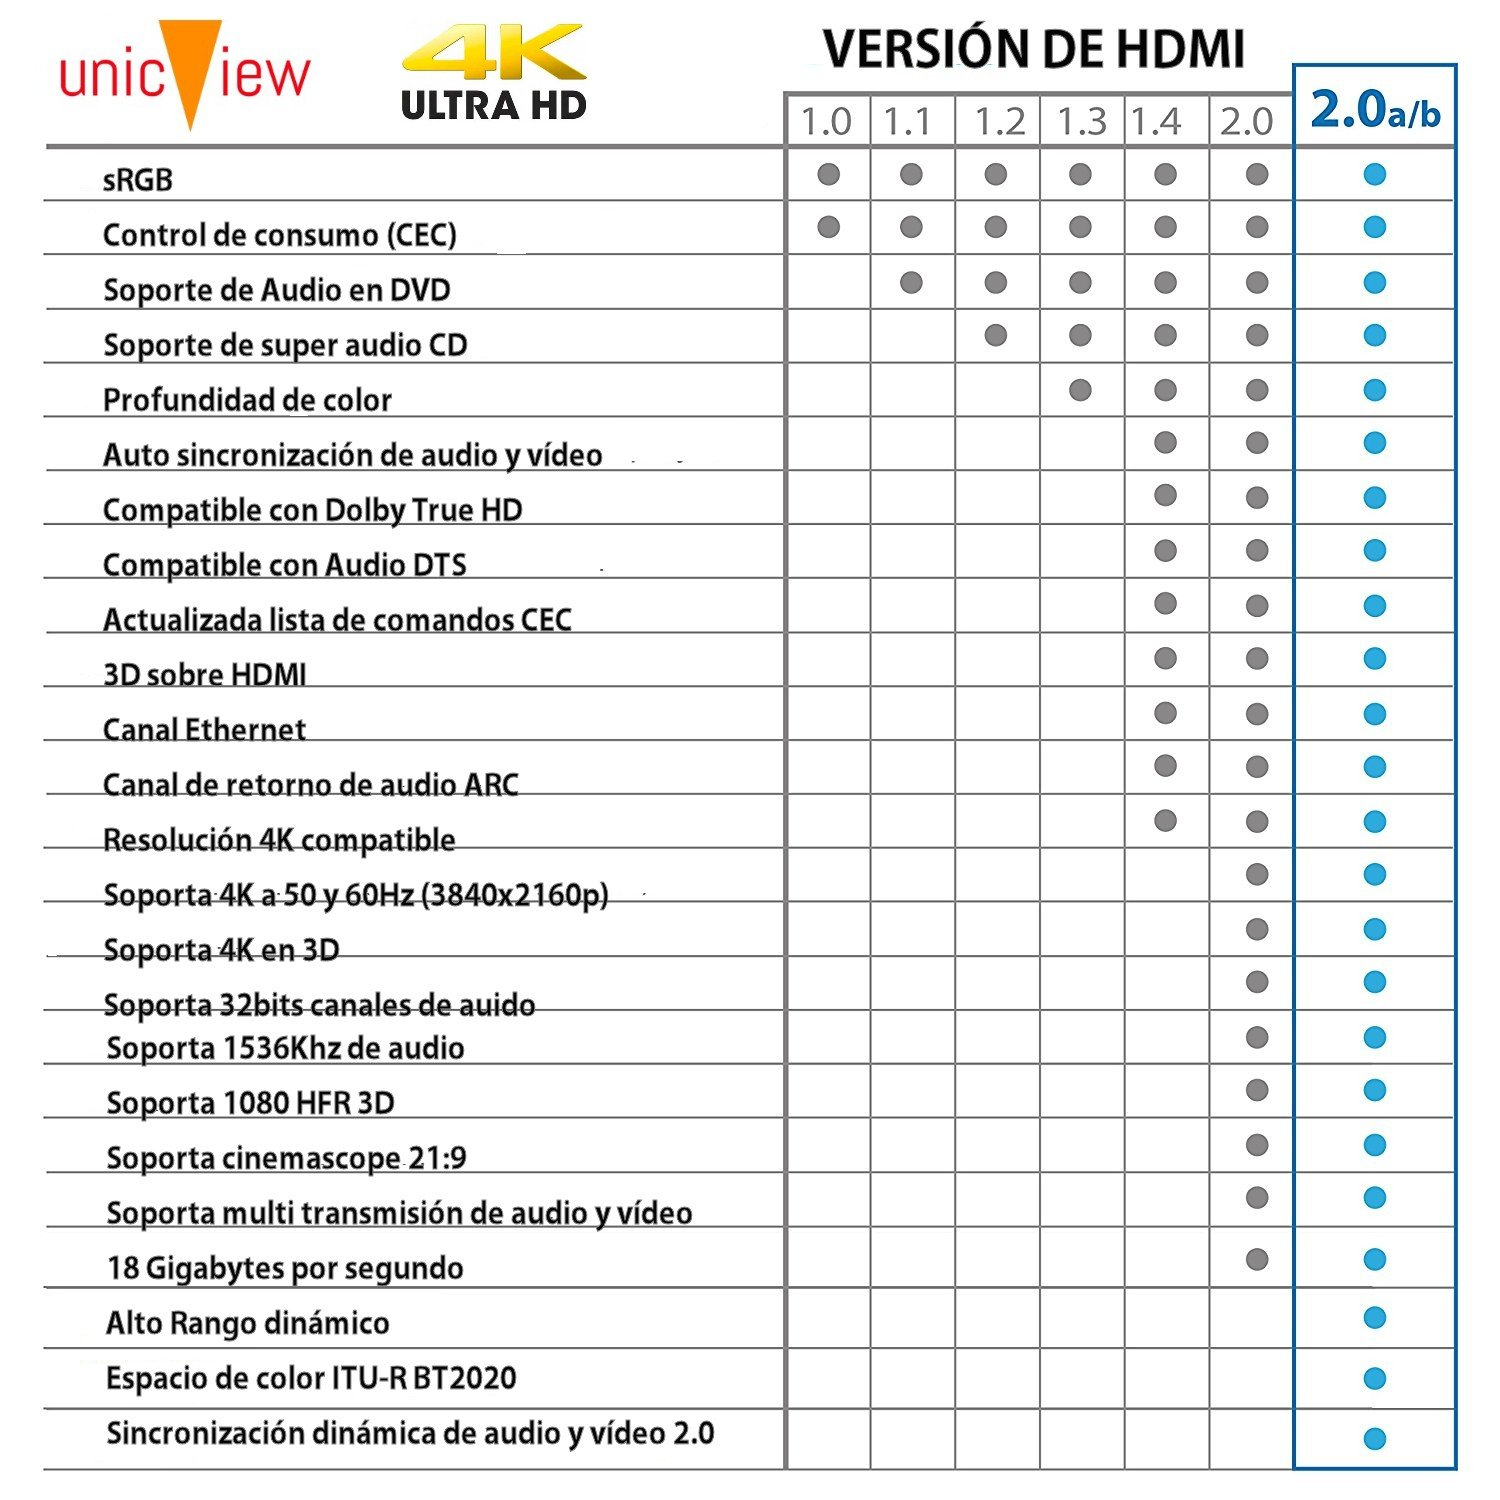 hdmi 2.0 modelo unicview